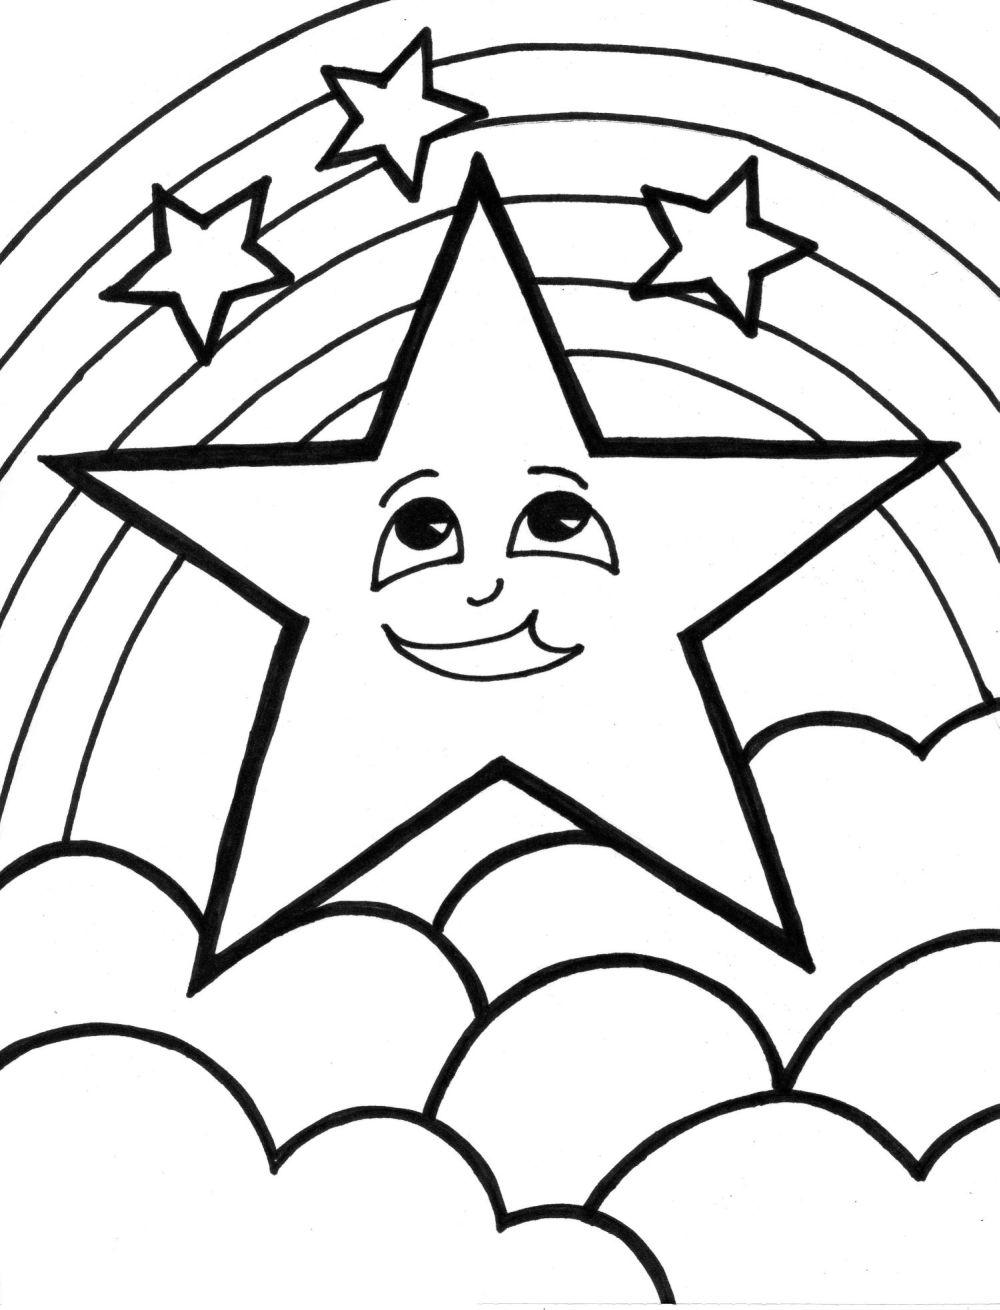 coloring pic of star stars coloring pages best coloring pages for kids of pic star coloring